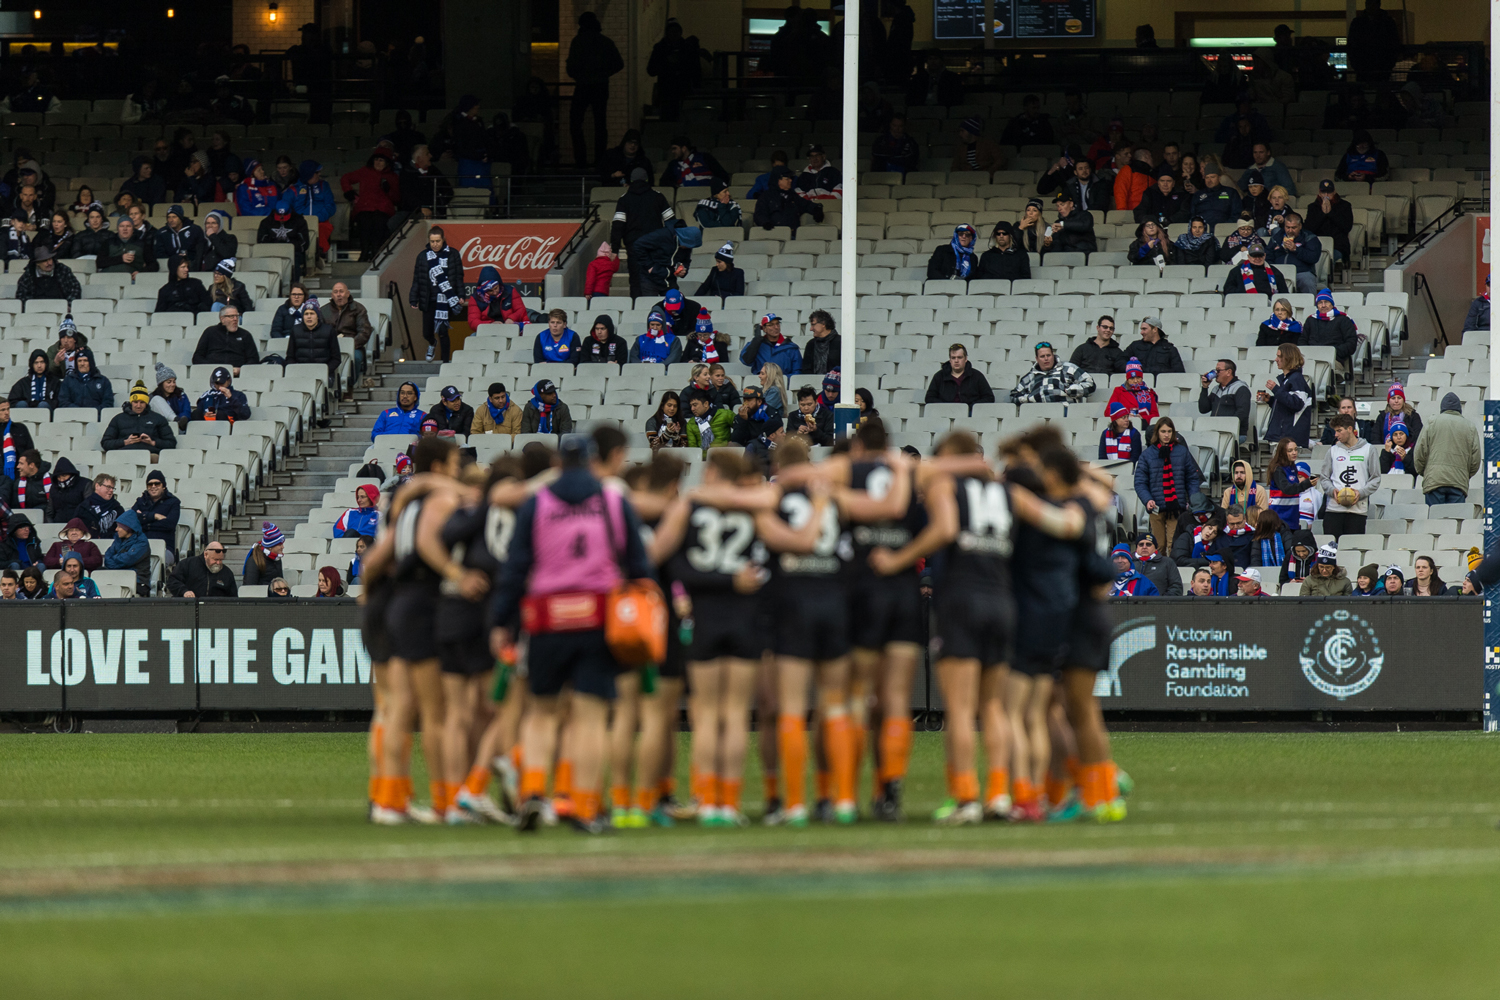 The players huddle in the middle of the ground before the first bounce of CARLTON RESPECTS round